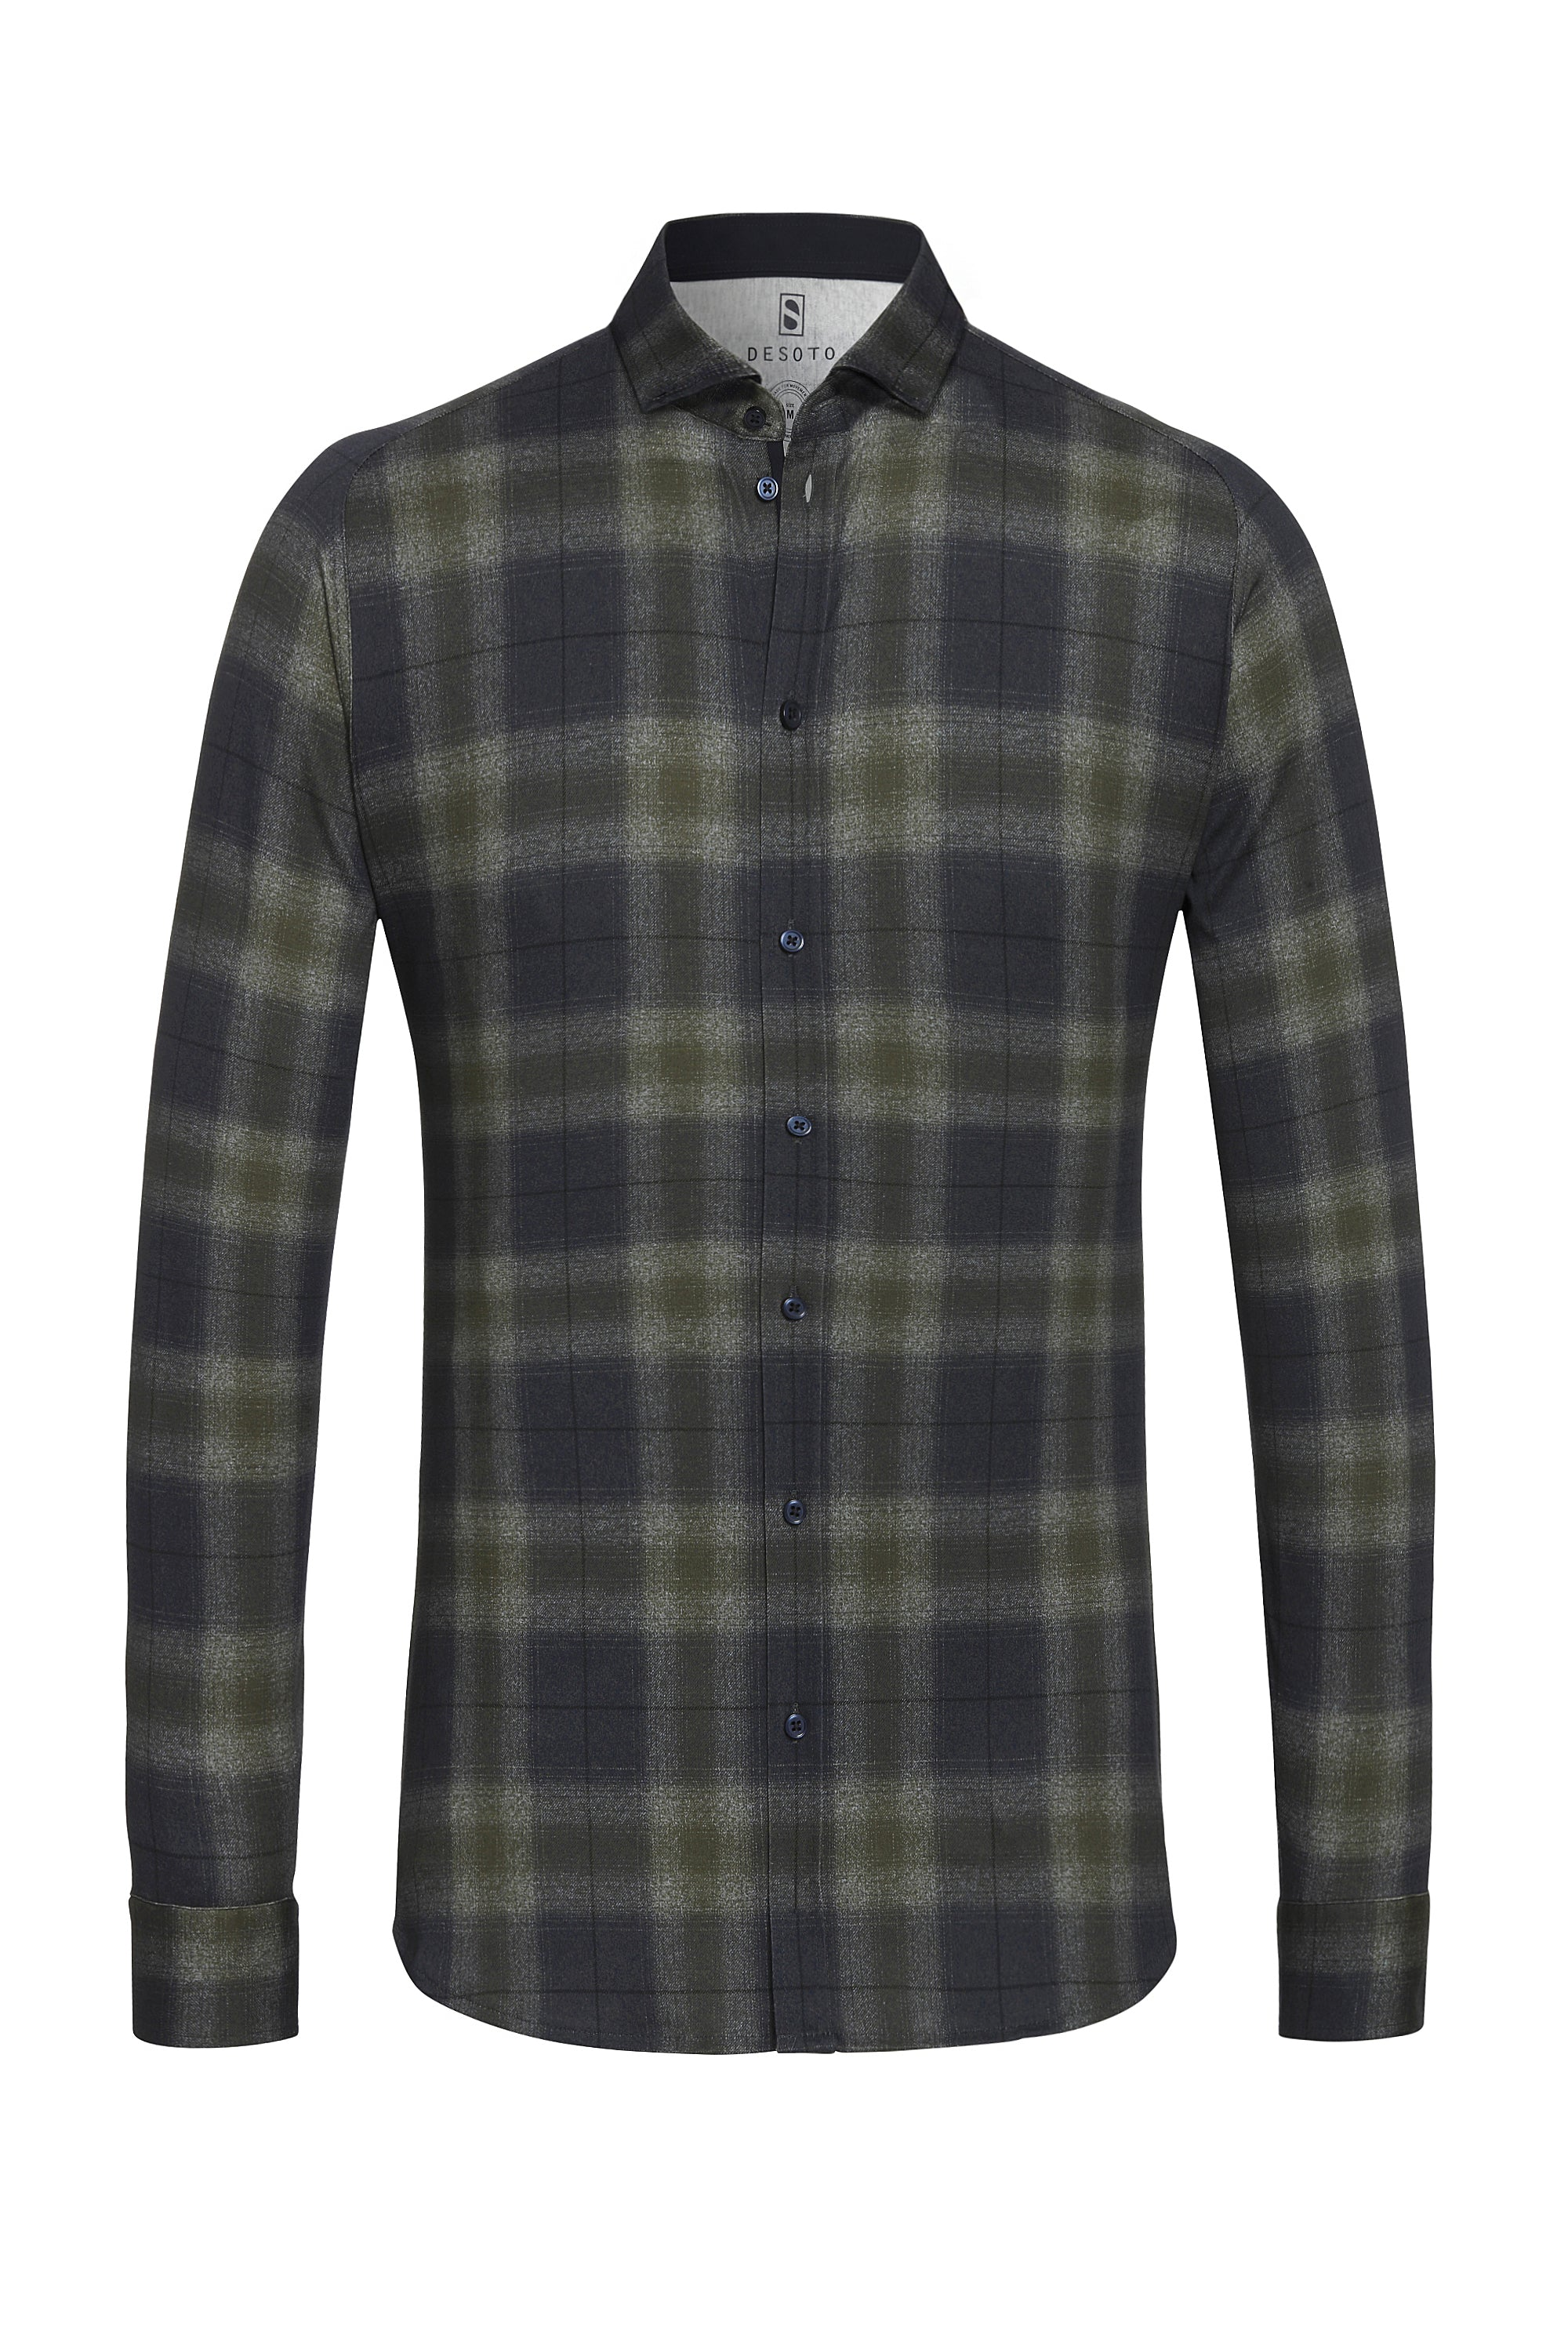 Olive-Navy Plaid Print Shirt